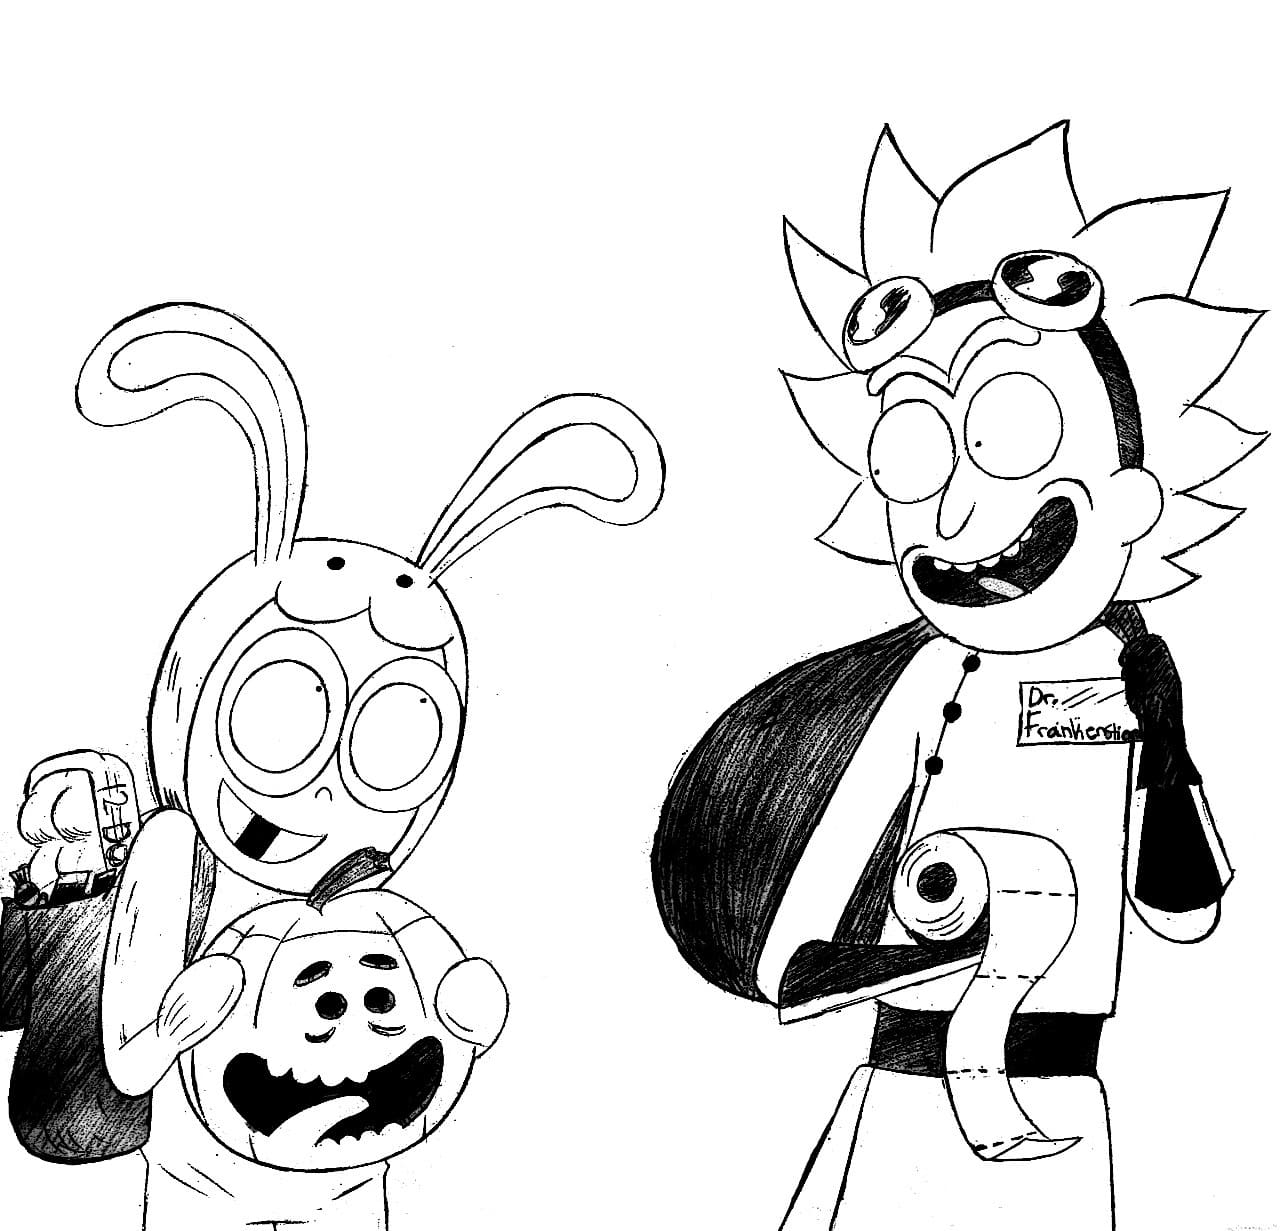 Coloring pages Rick and Morty. Print intergalactic images here